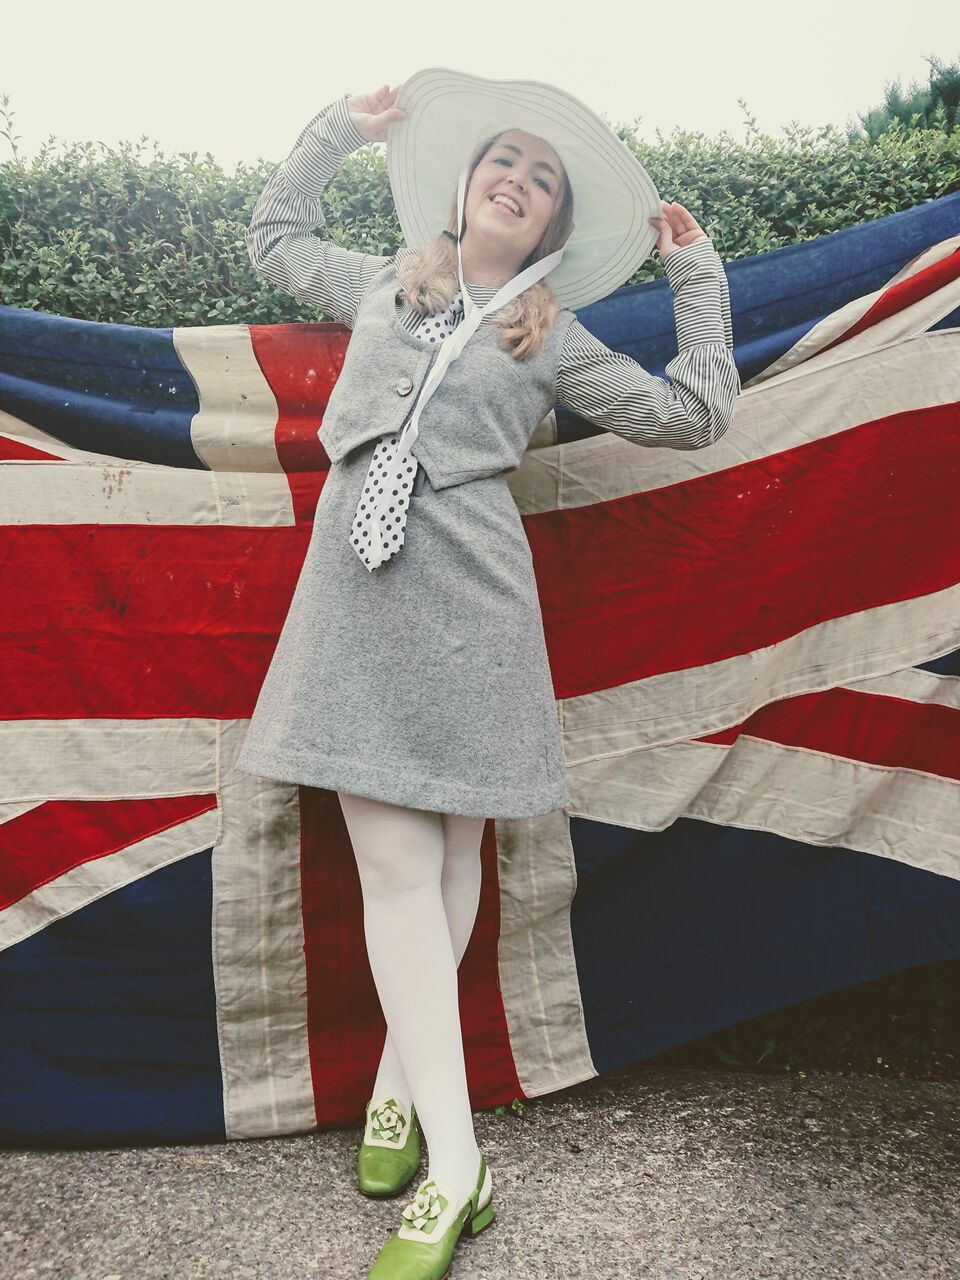 A model wears reproduction Quant attire in front of a union jack flag. The outfit is a grey waistcoat dress.